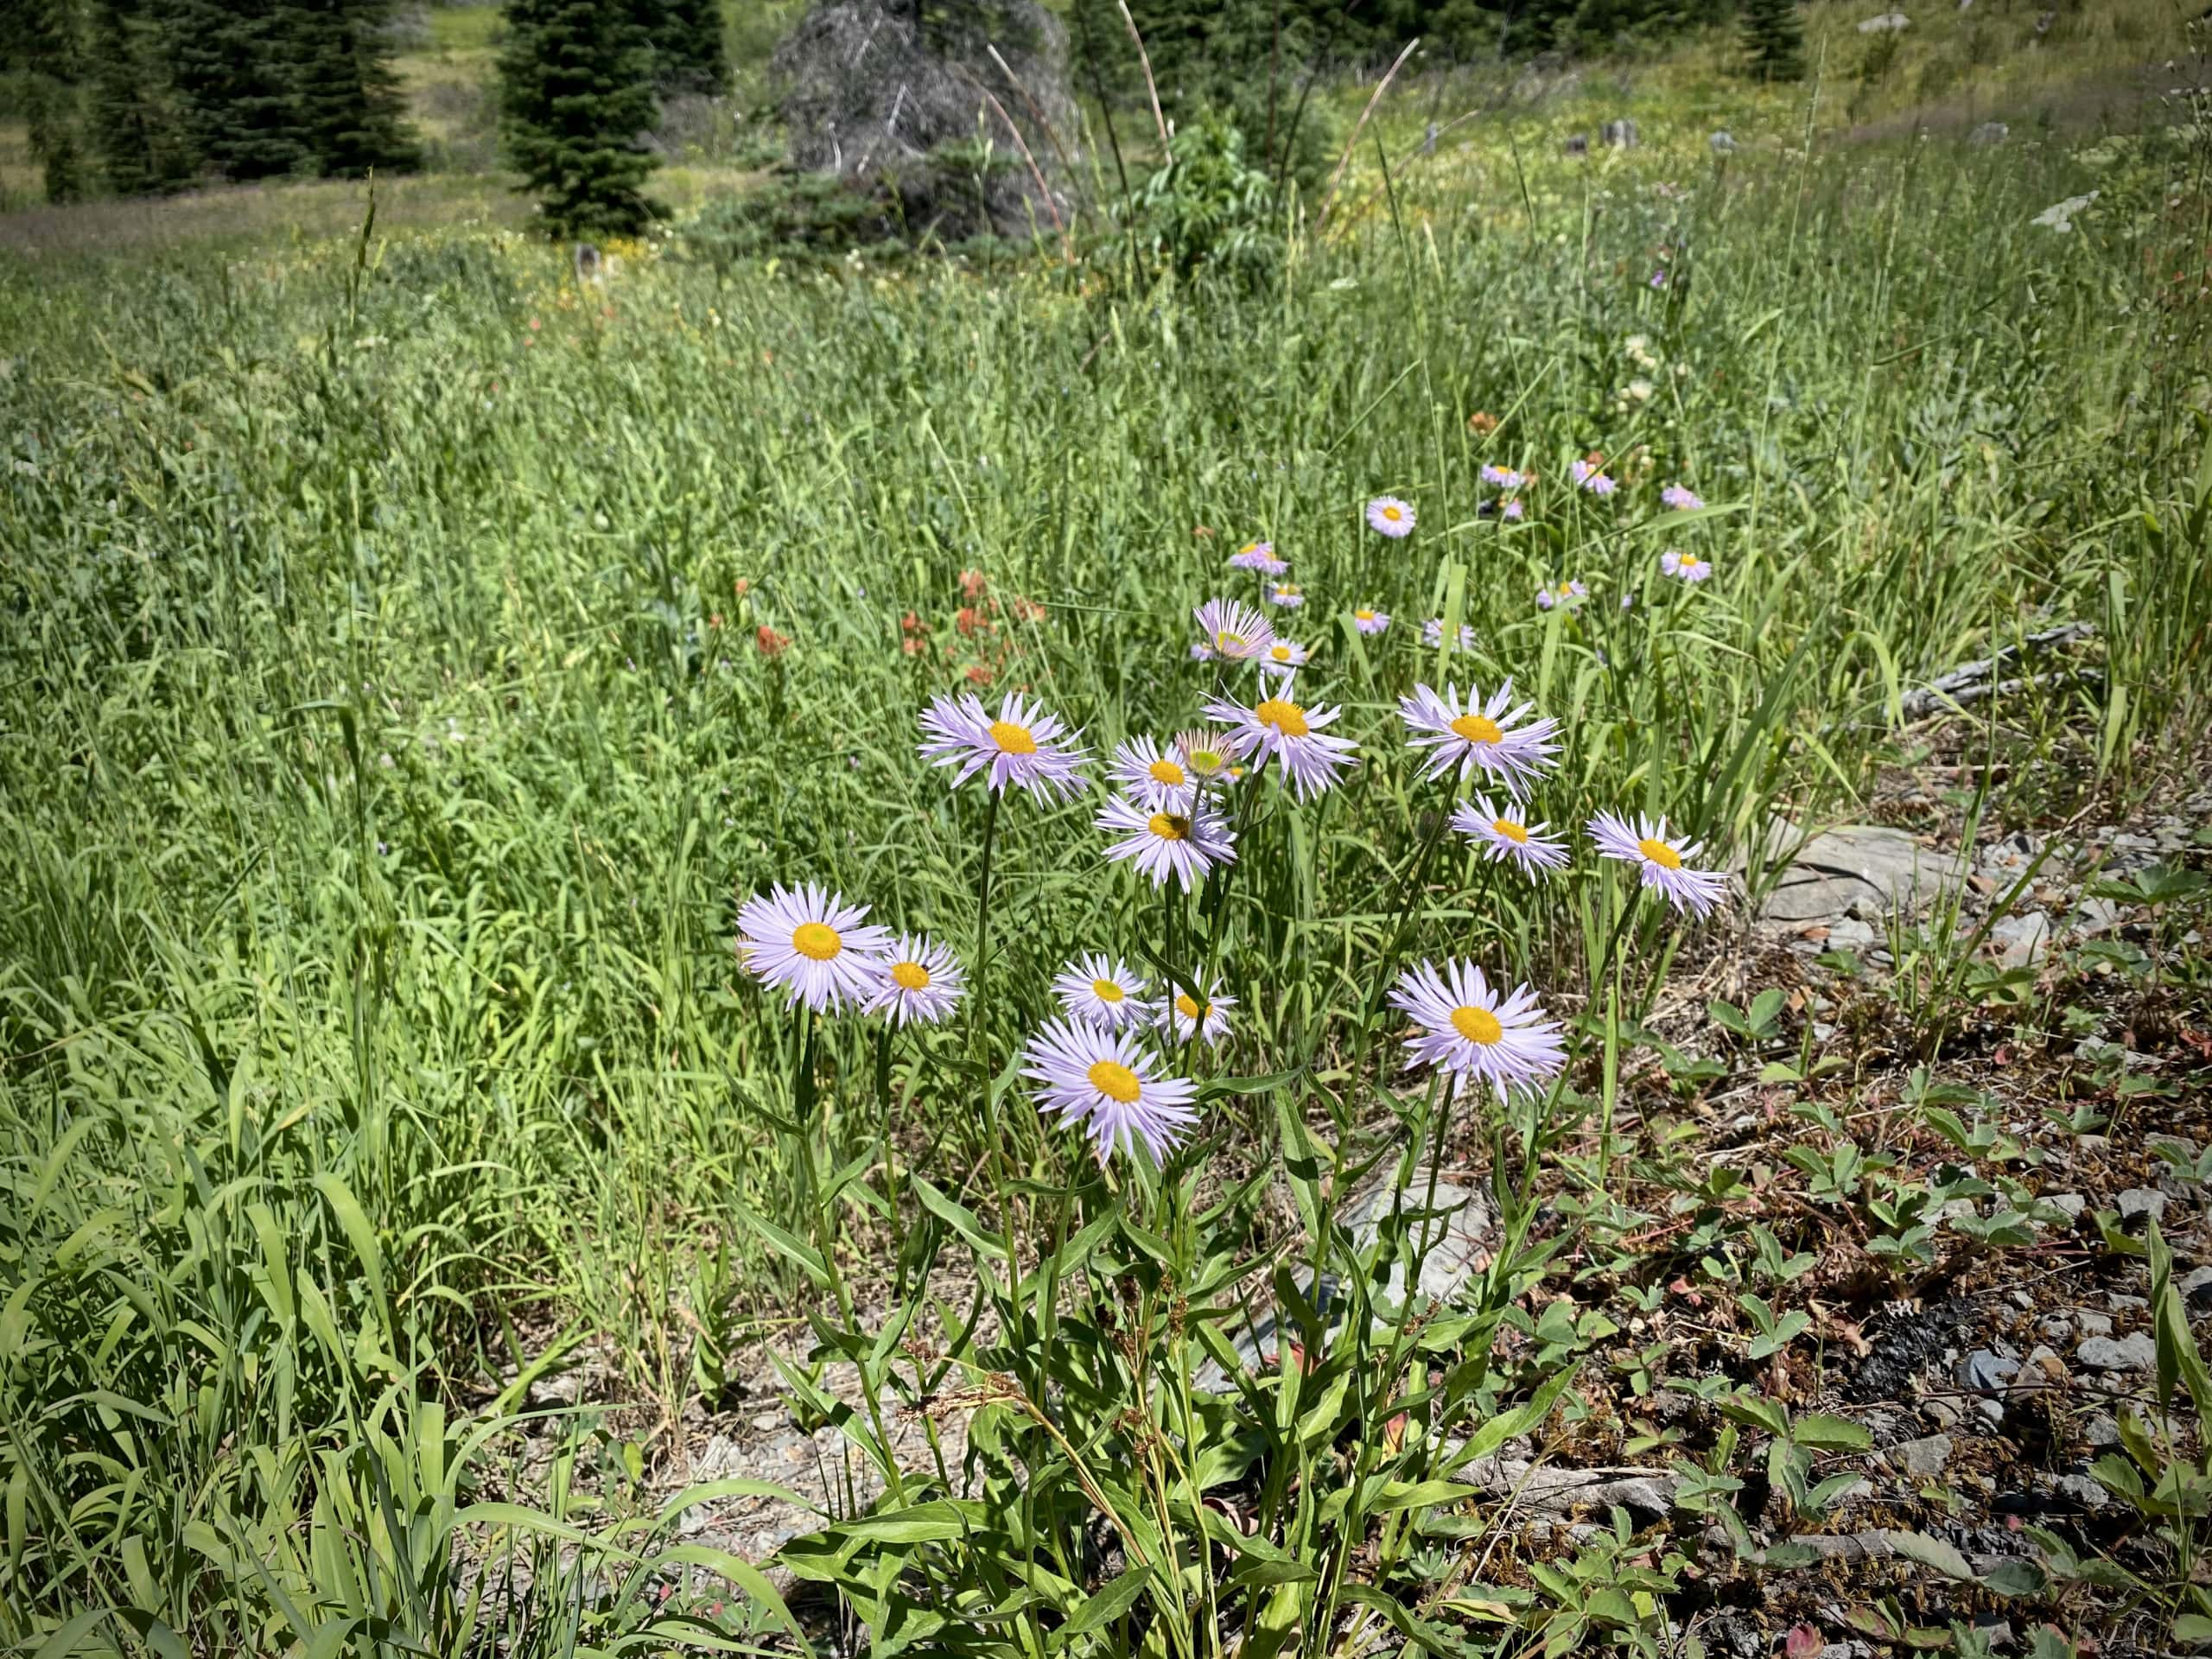 Pink daisies at mountain meadow along NF 23.